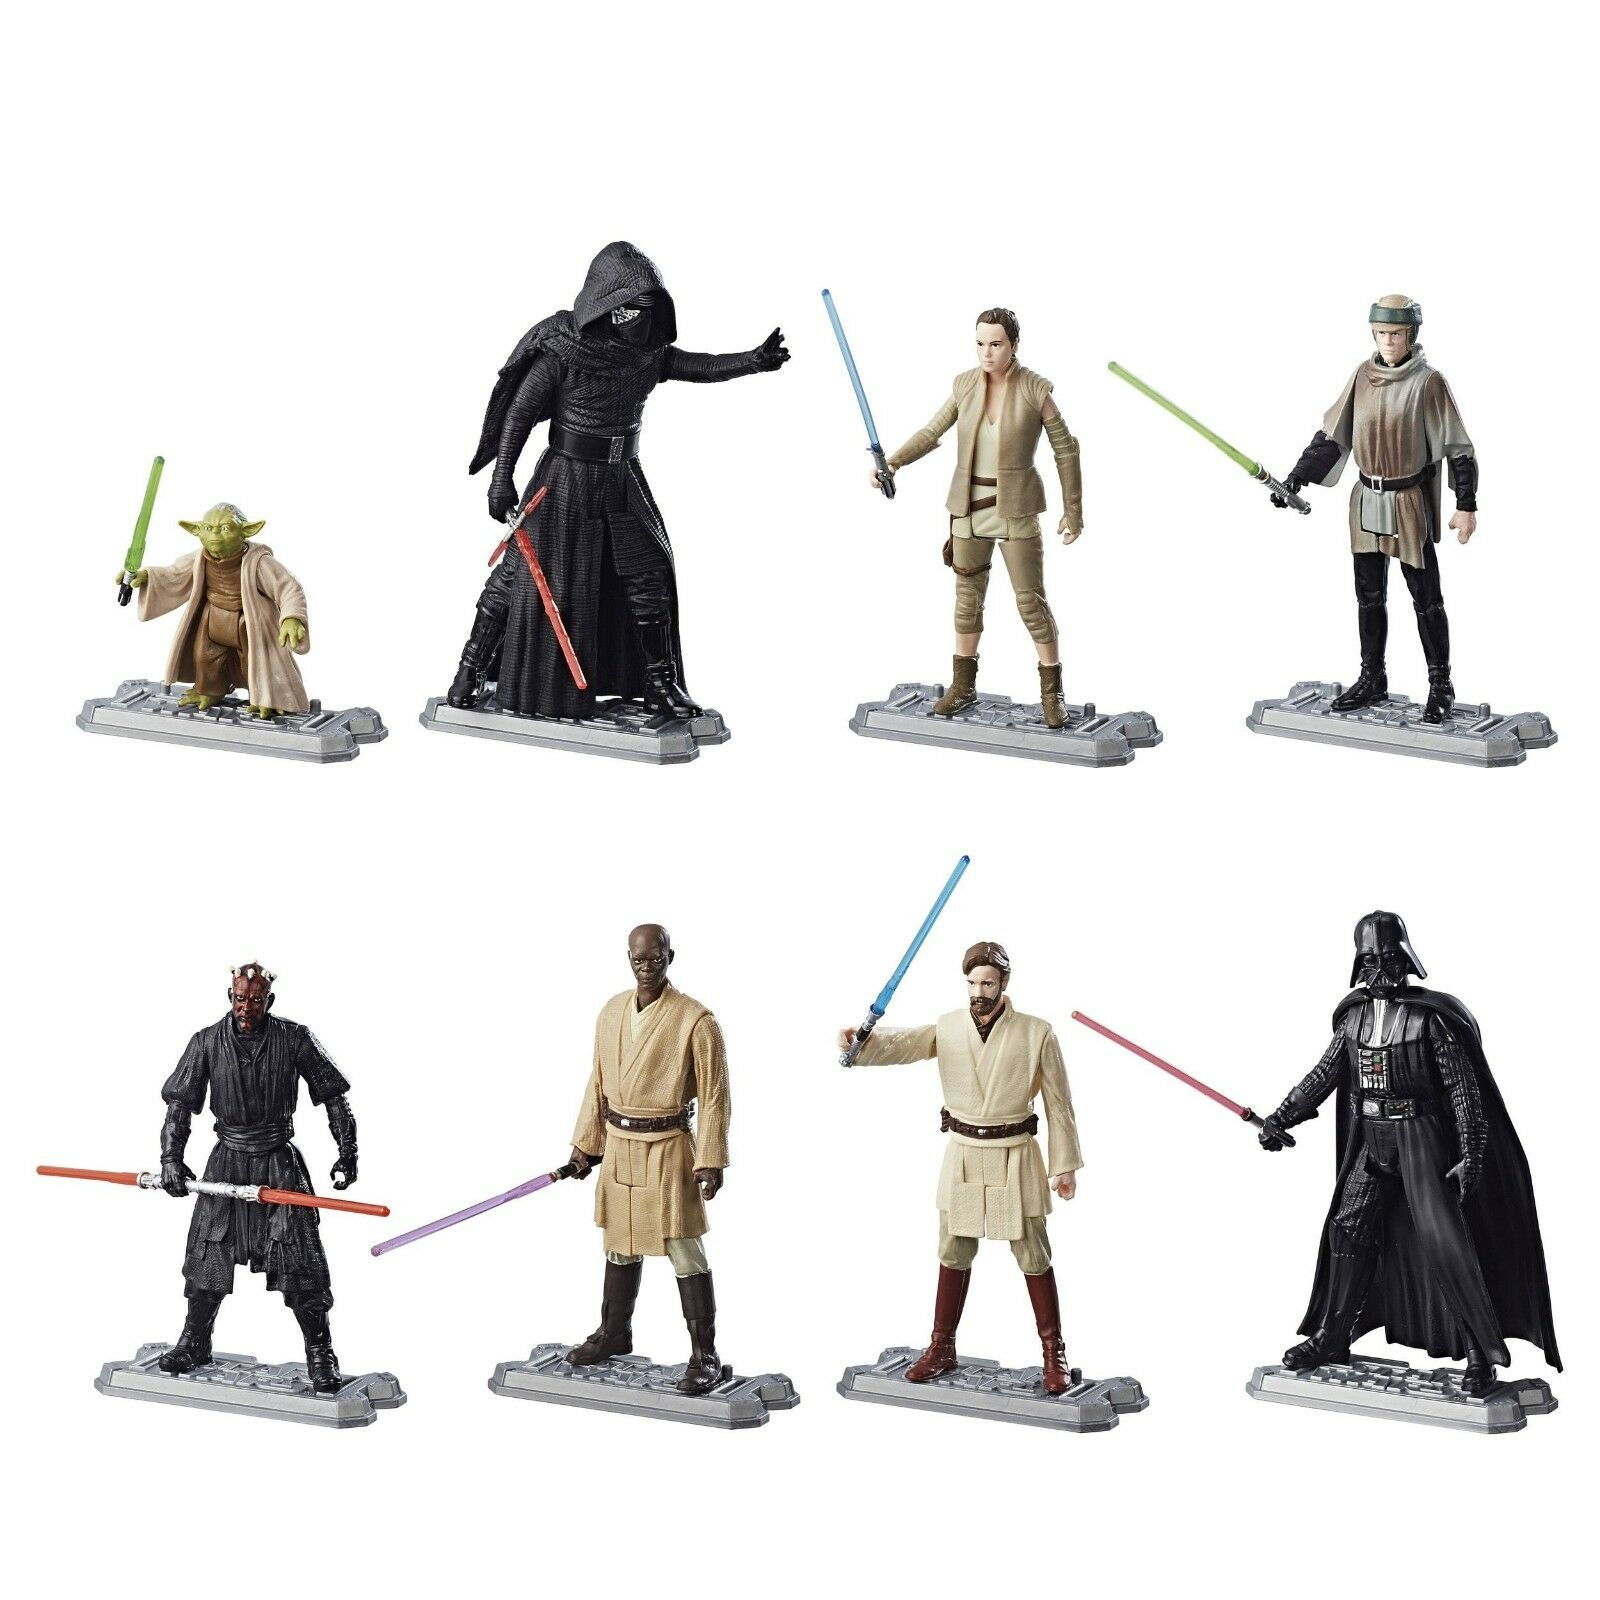 Star Wars Action Figure 8-Pack 2017 Era of the Force Exclusive